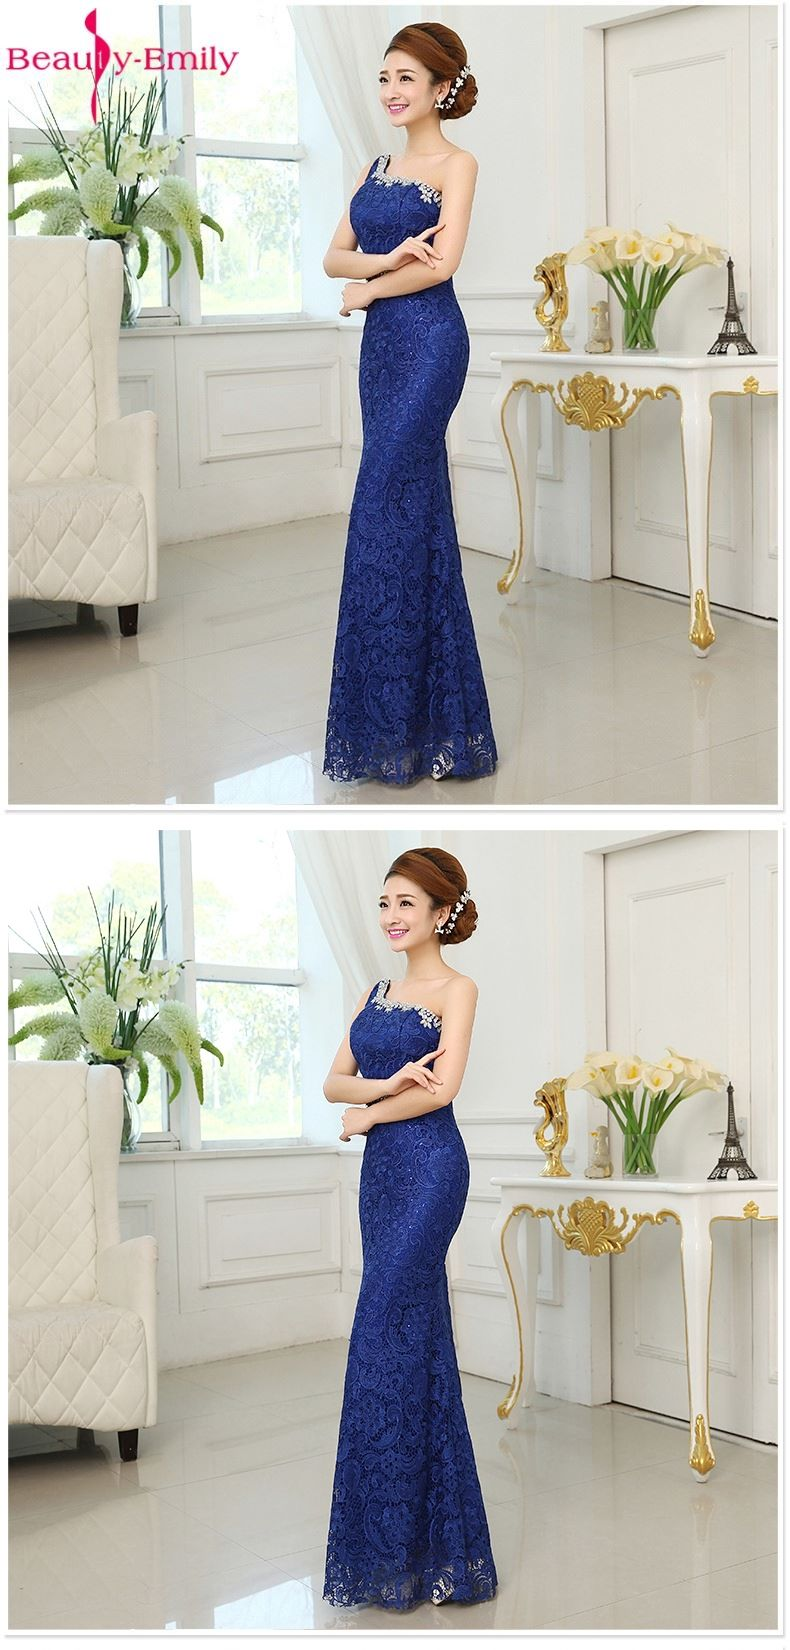 Beautyemily evening dresses lace mermaid dresses formal party party